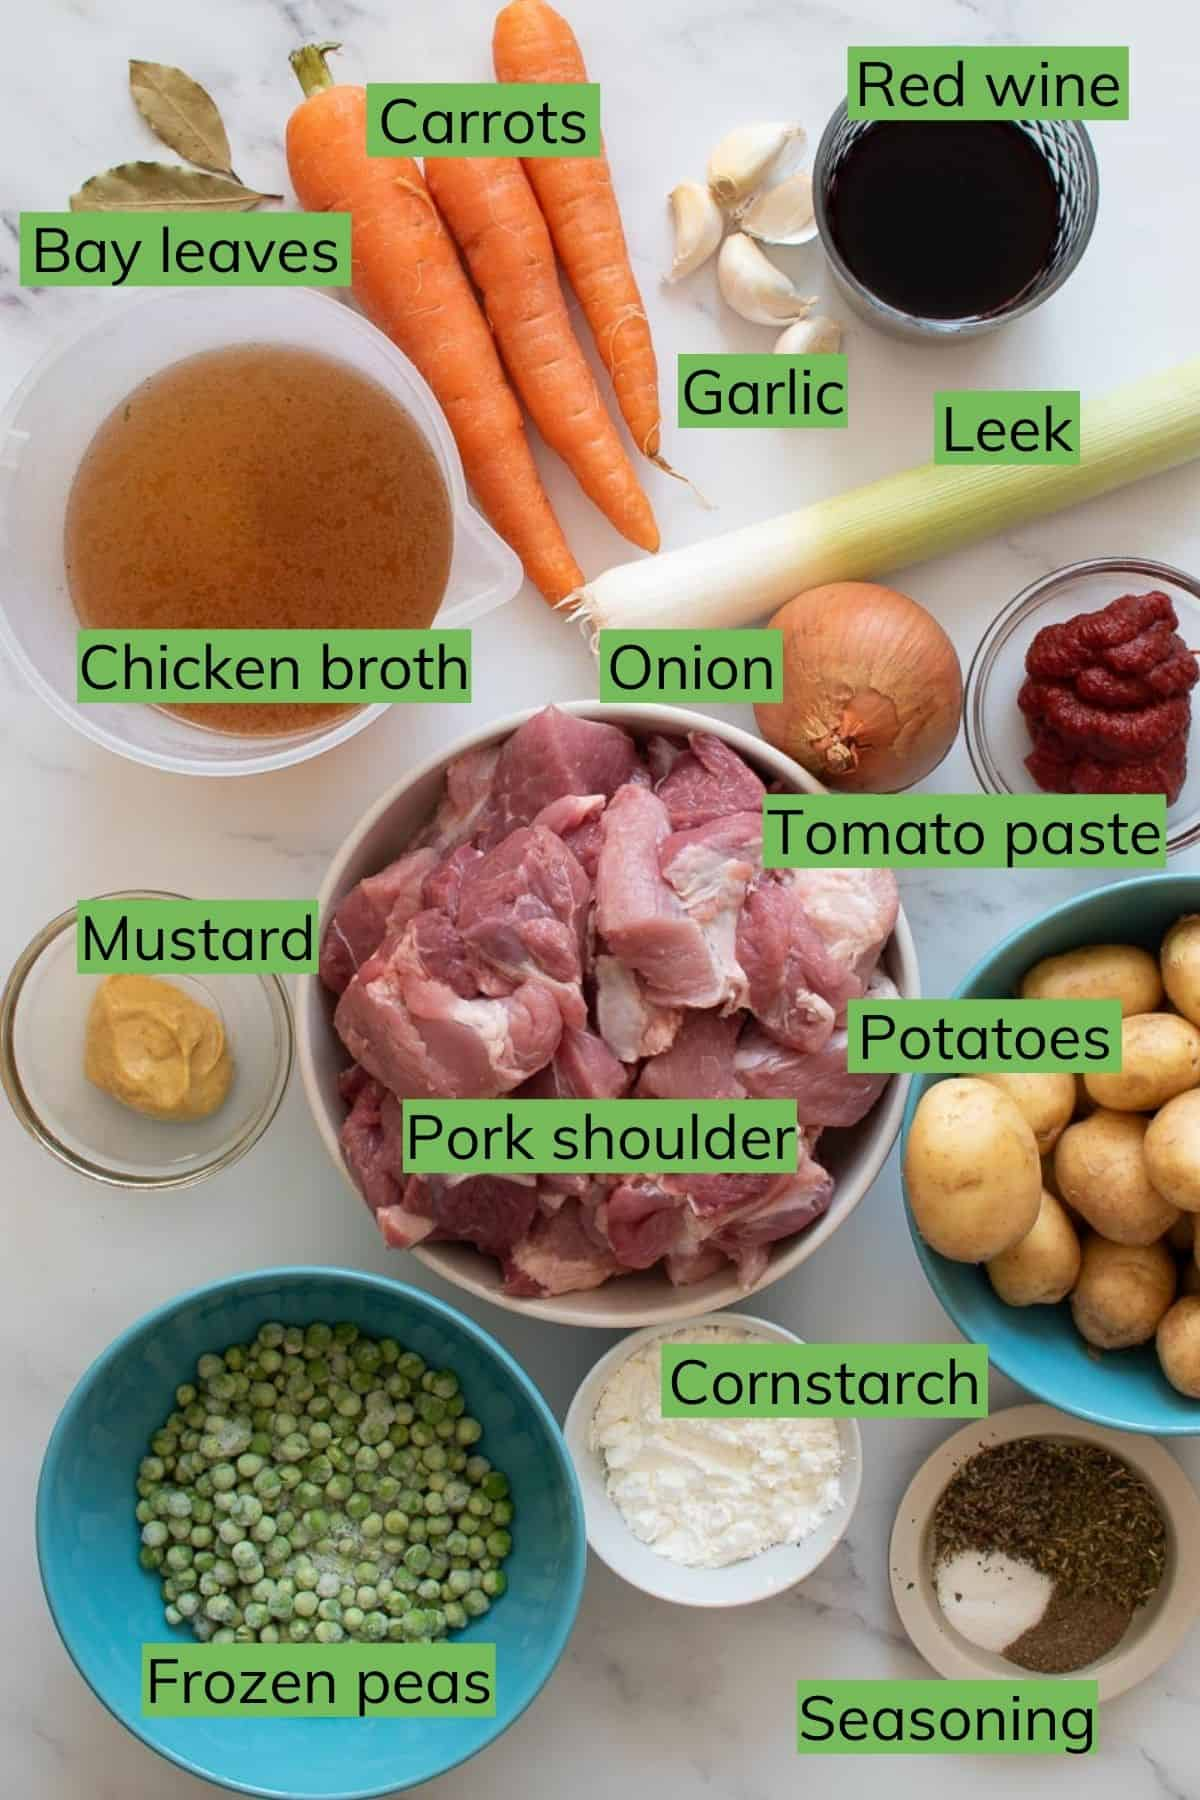 The ingredients needed to make this recipe.